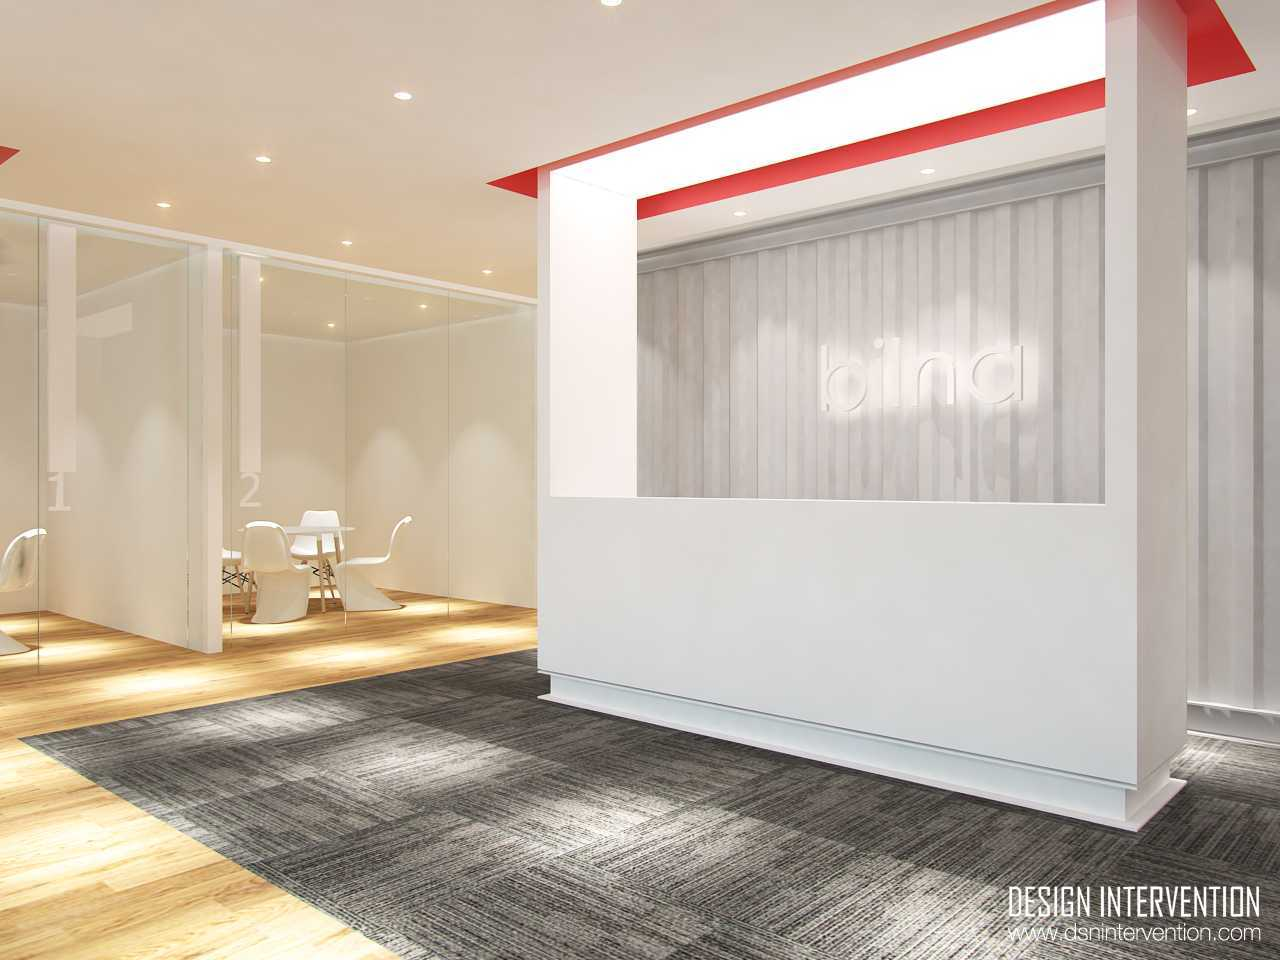 Design Intervention B - Office Concept Bsd Office Park Bsd Office Park Lobby  13965